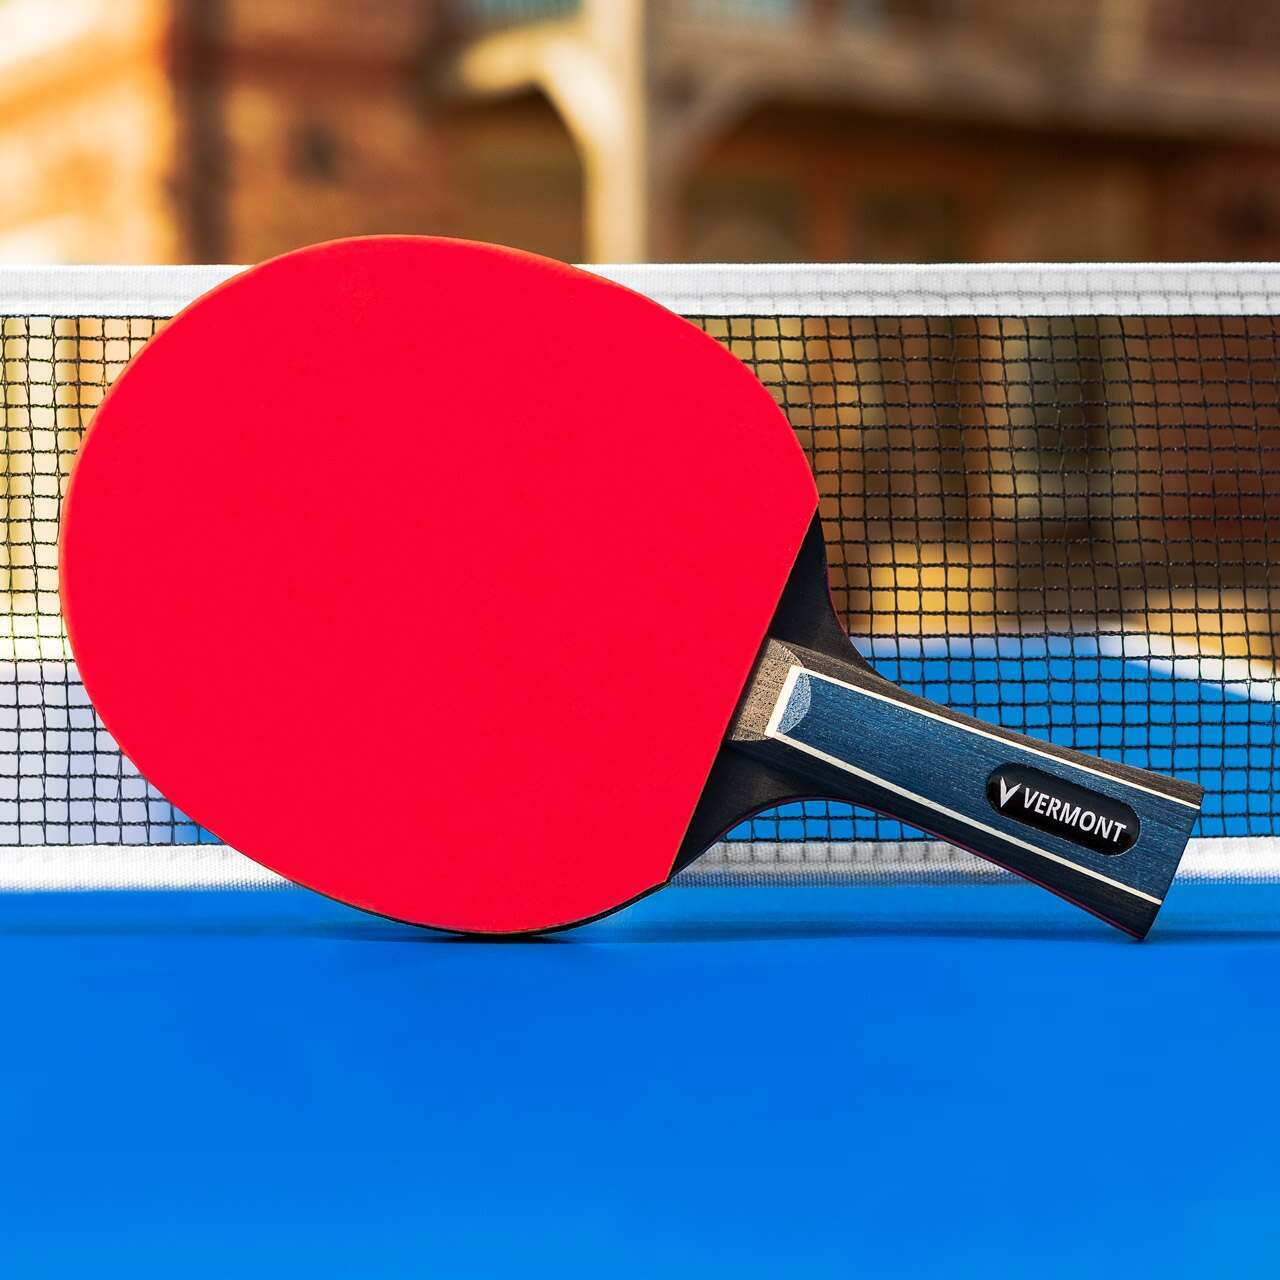 Vermont Aero Table Tennis Bat [Club]